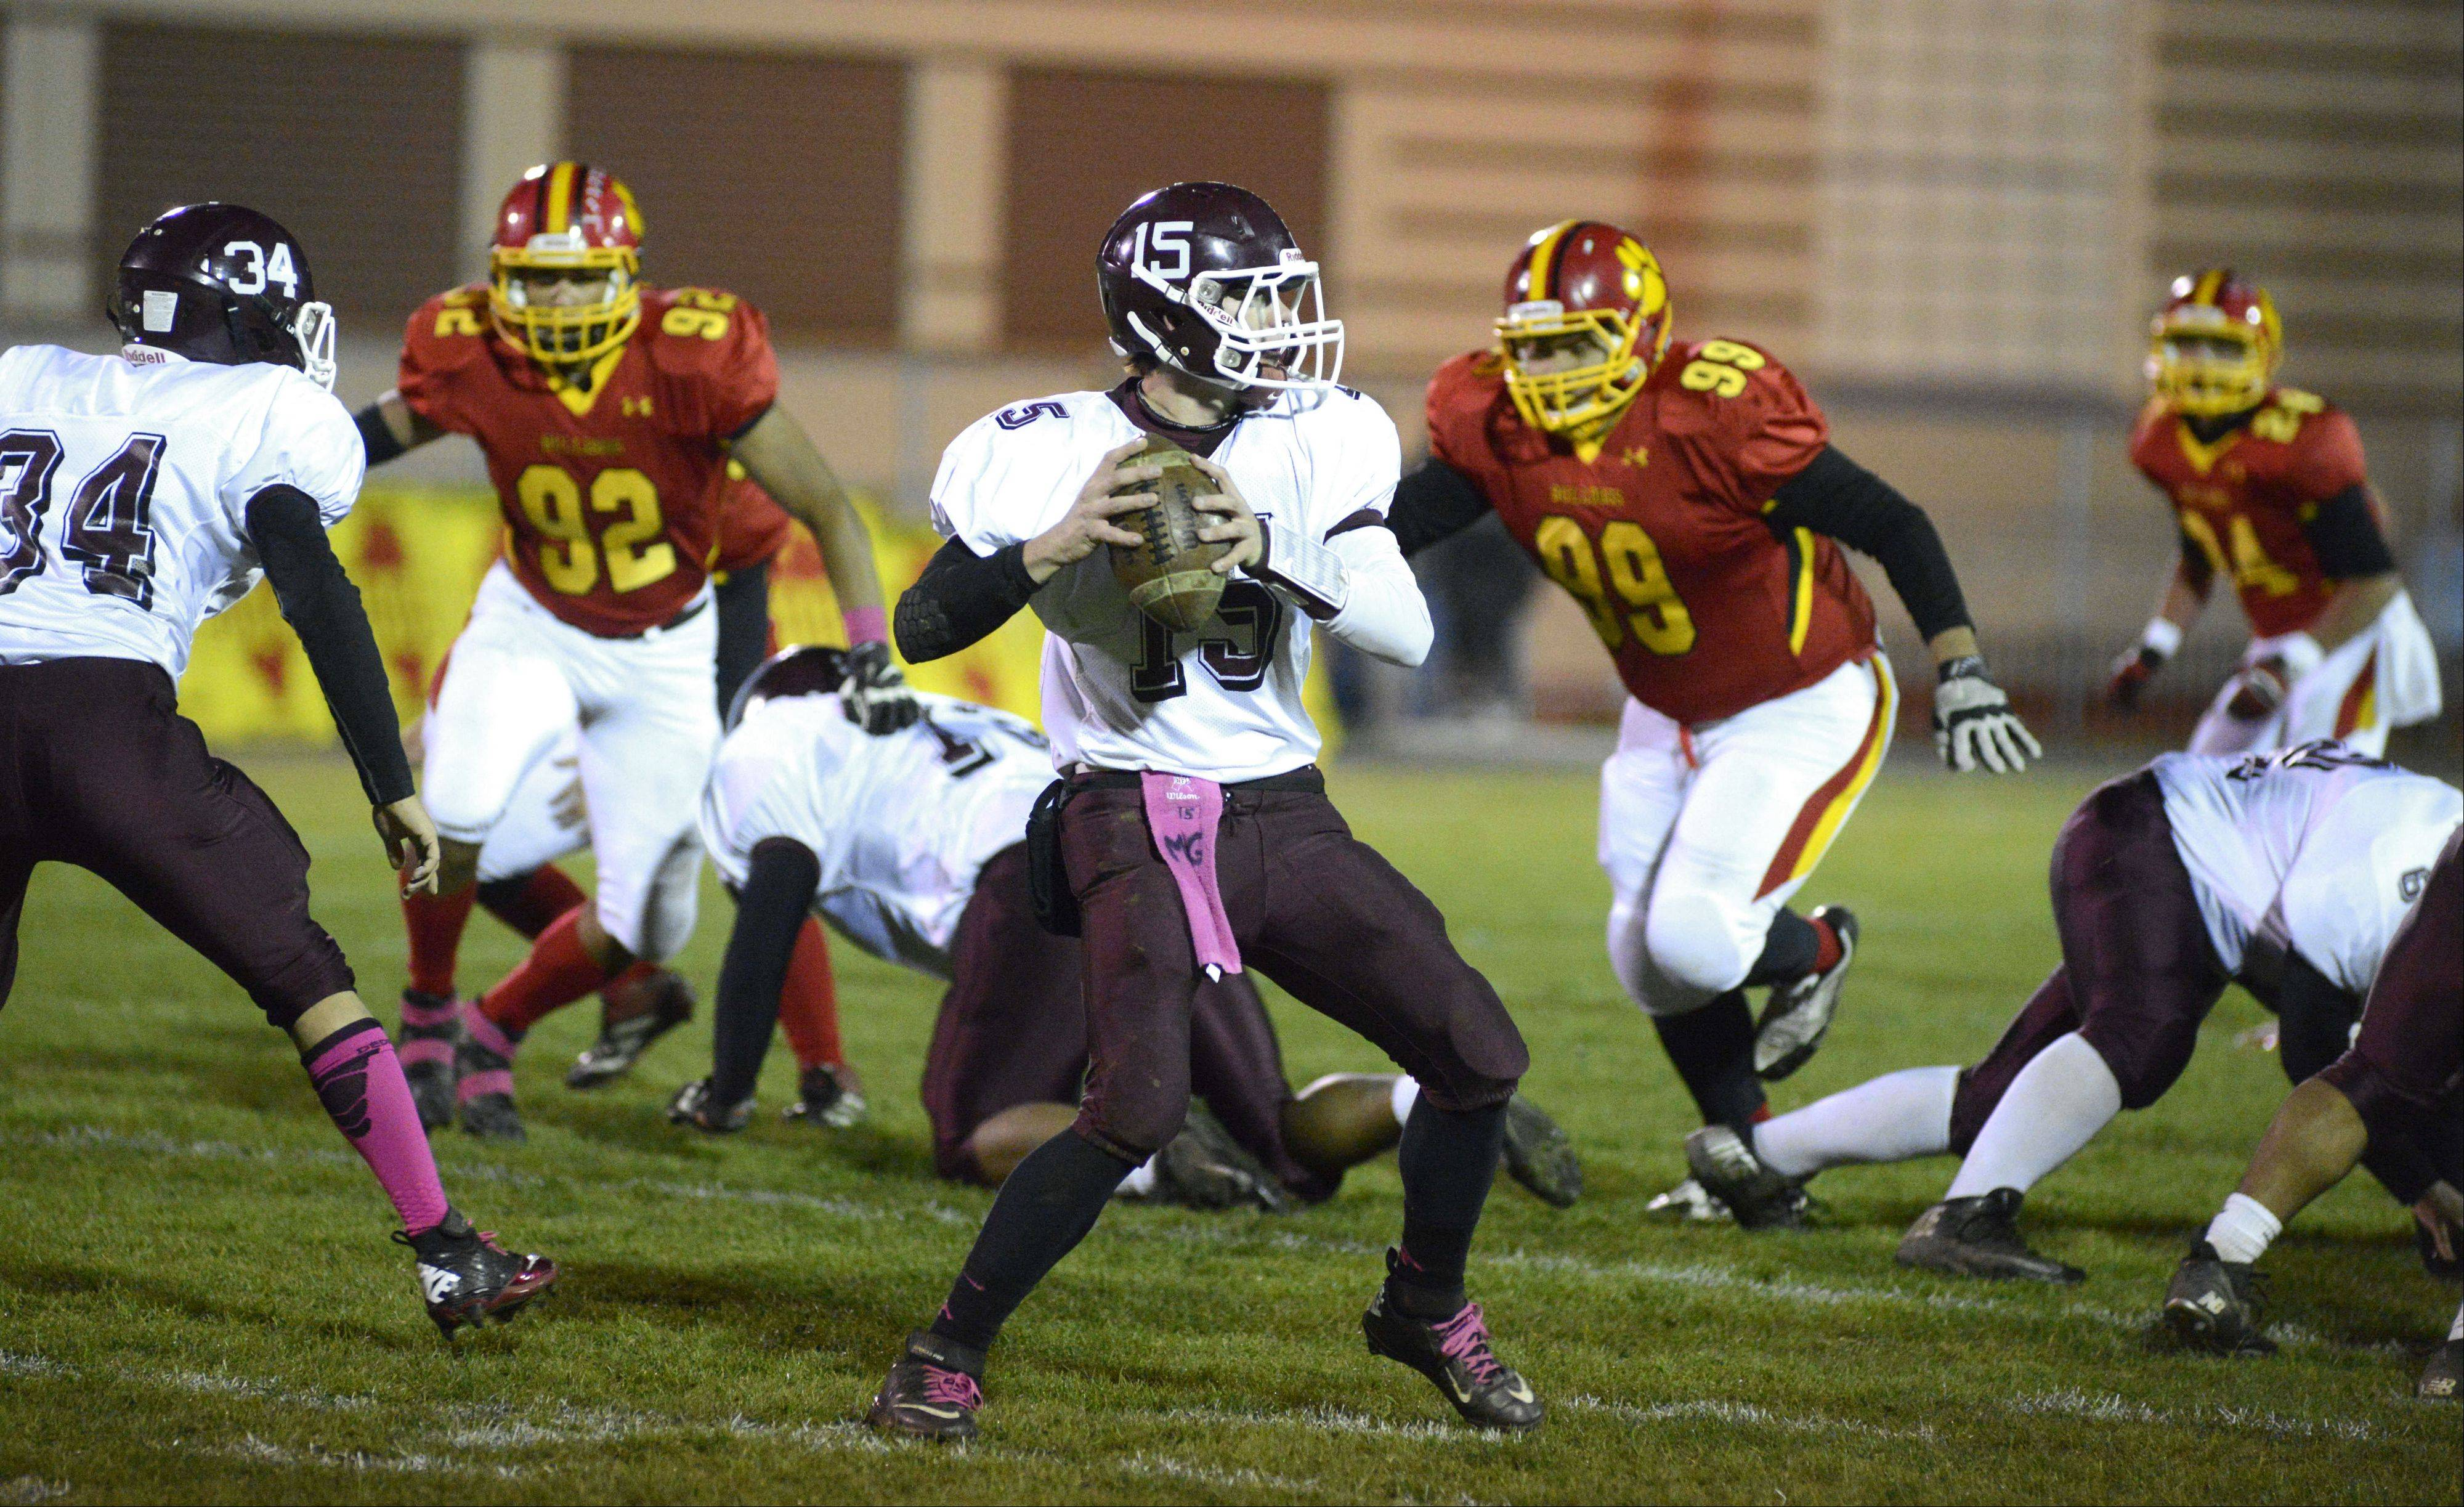 Week 9 - Images from the Elgin vs. Batavia football game Friday, October 25, 2013.